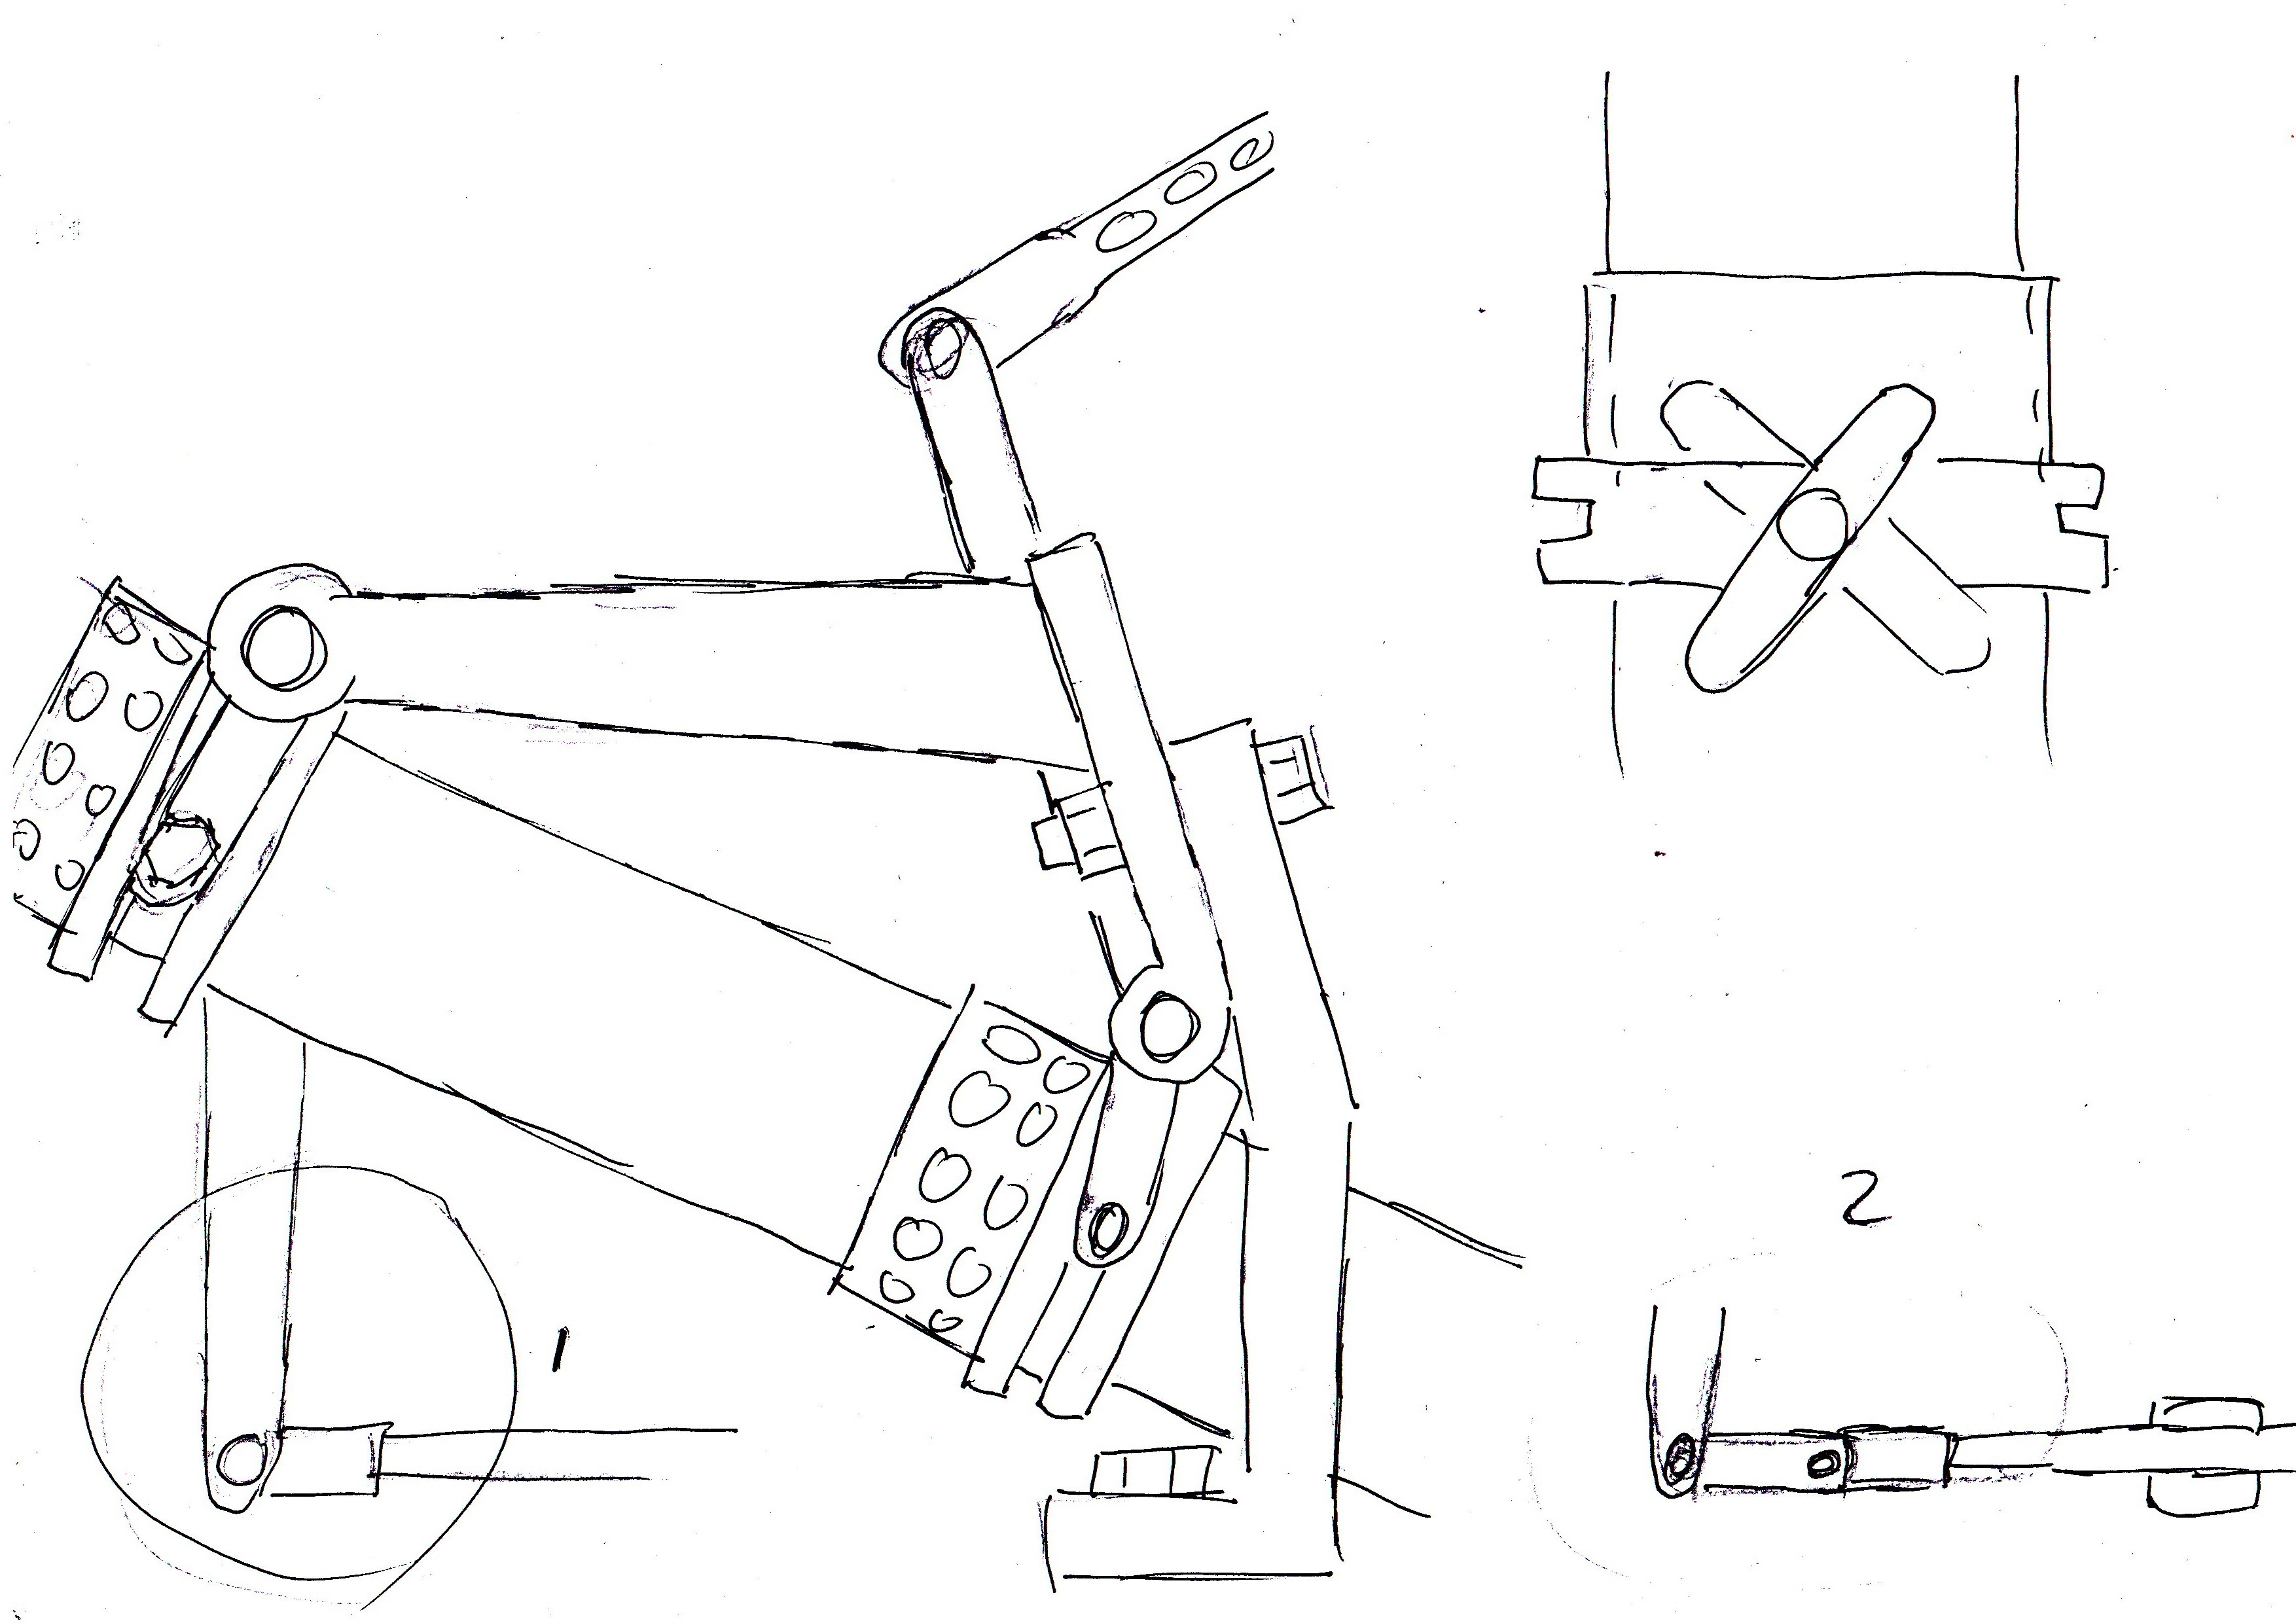 Fiat Control Linkage Diagrams With Some Edits Added